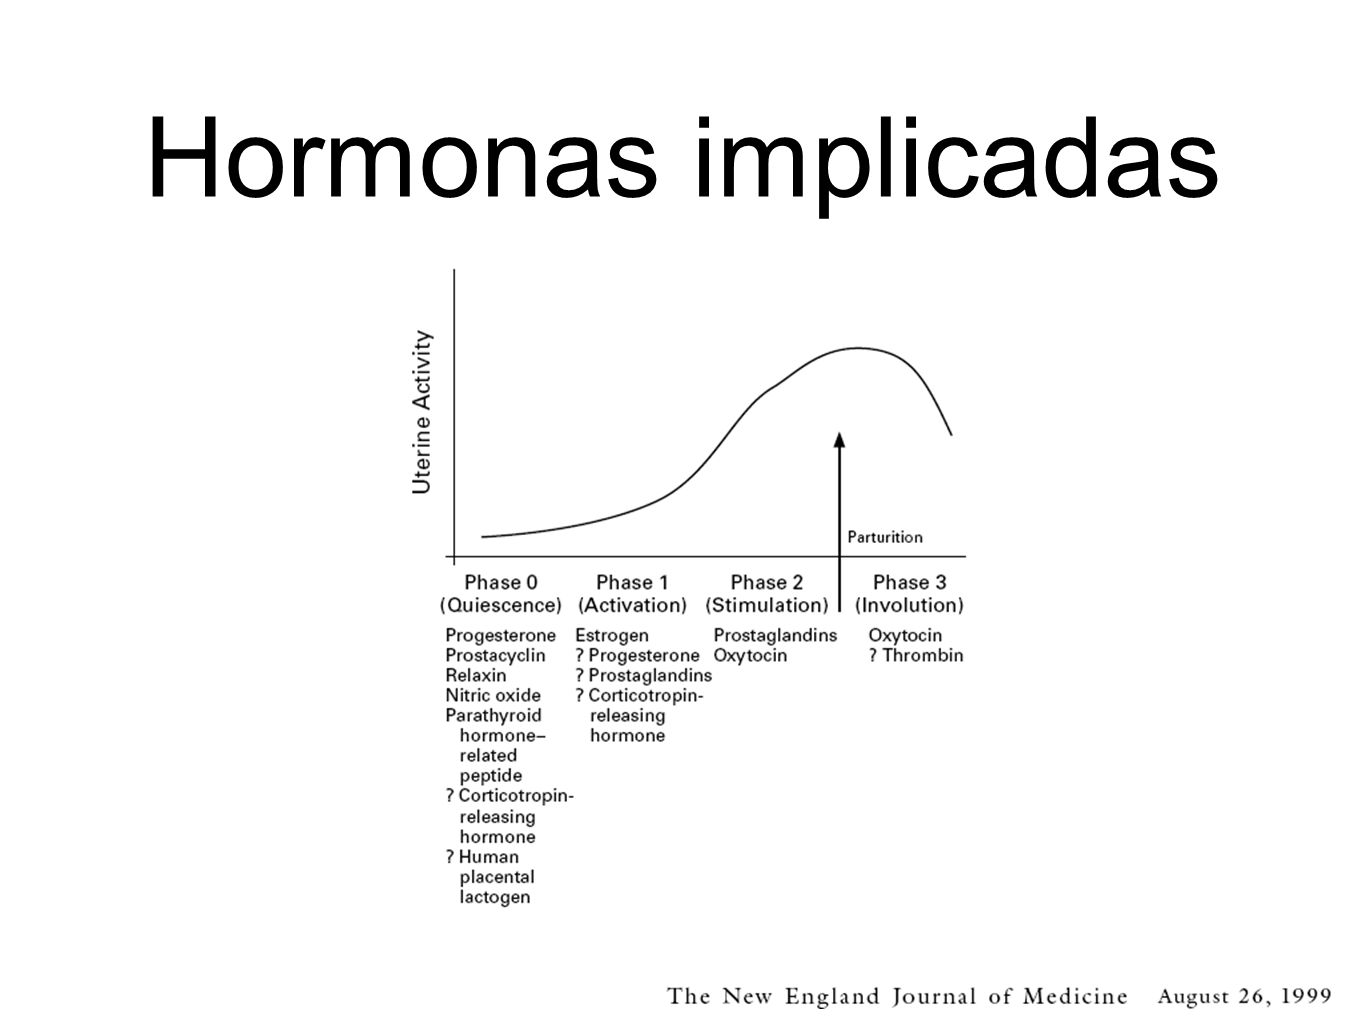 Hormonas implicadas